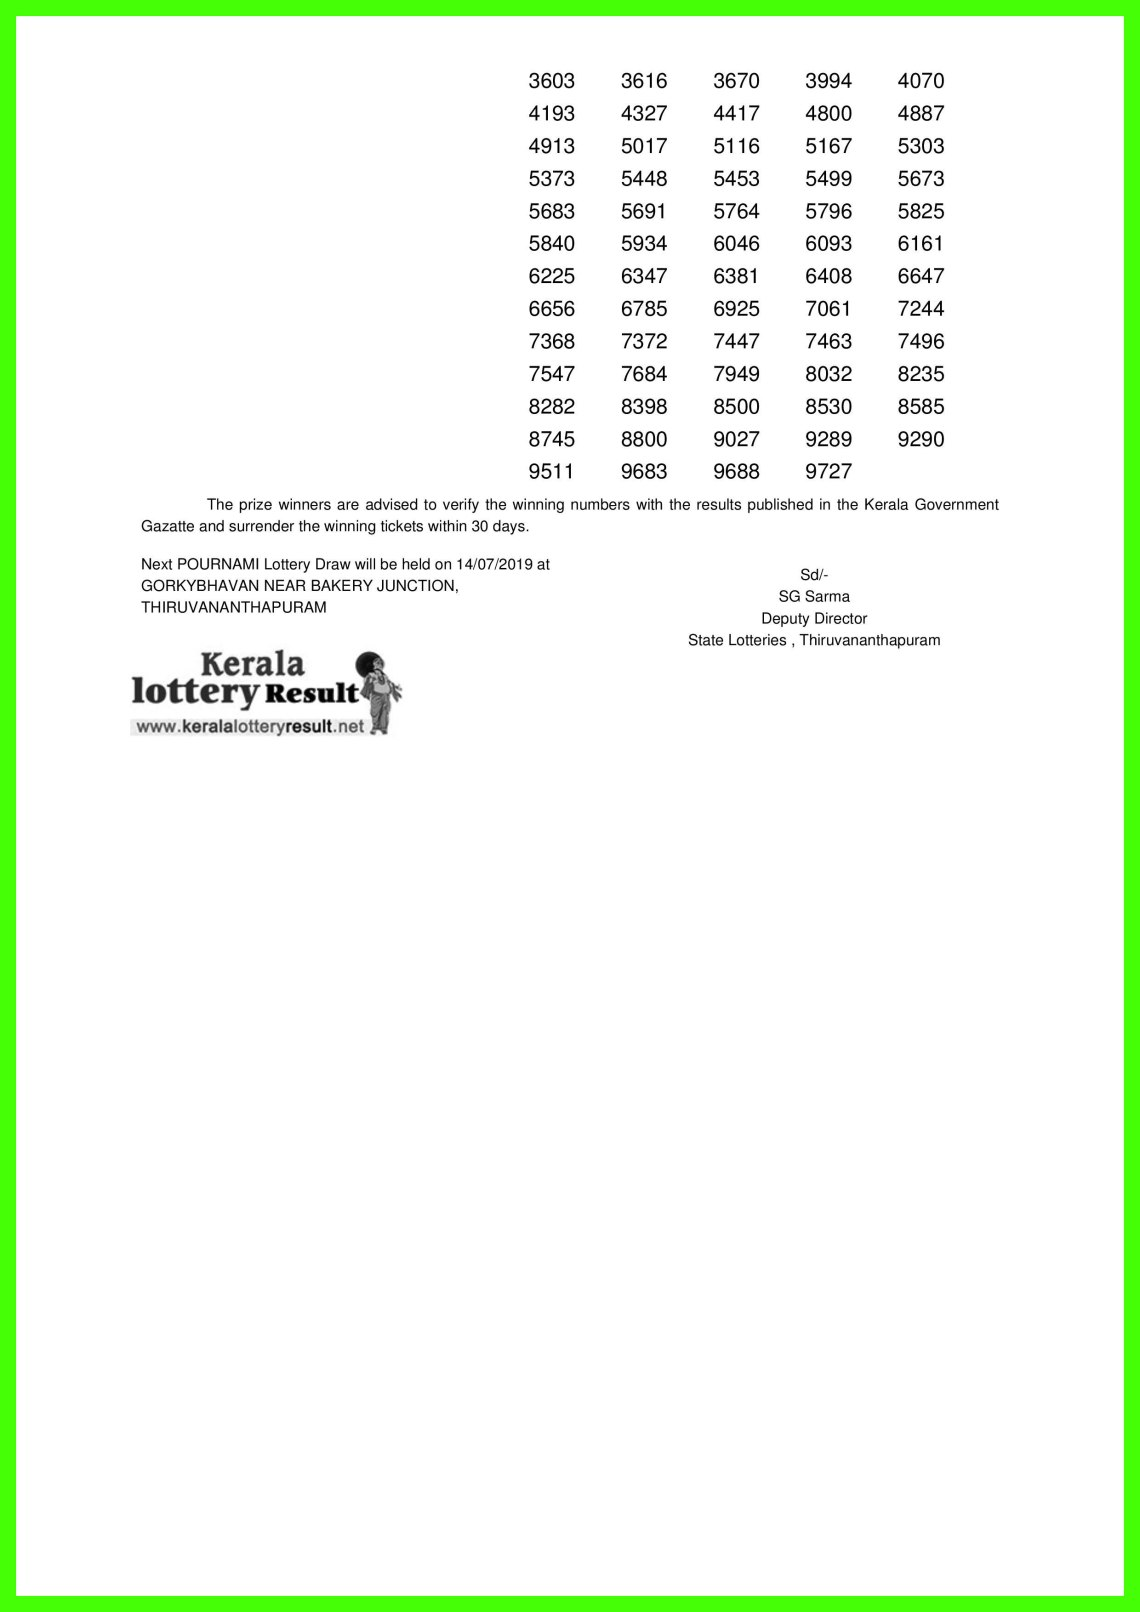 POURNAMI LOTTERY NO. RN-399th DRAW held on 07.07.2019-page-002